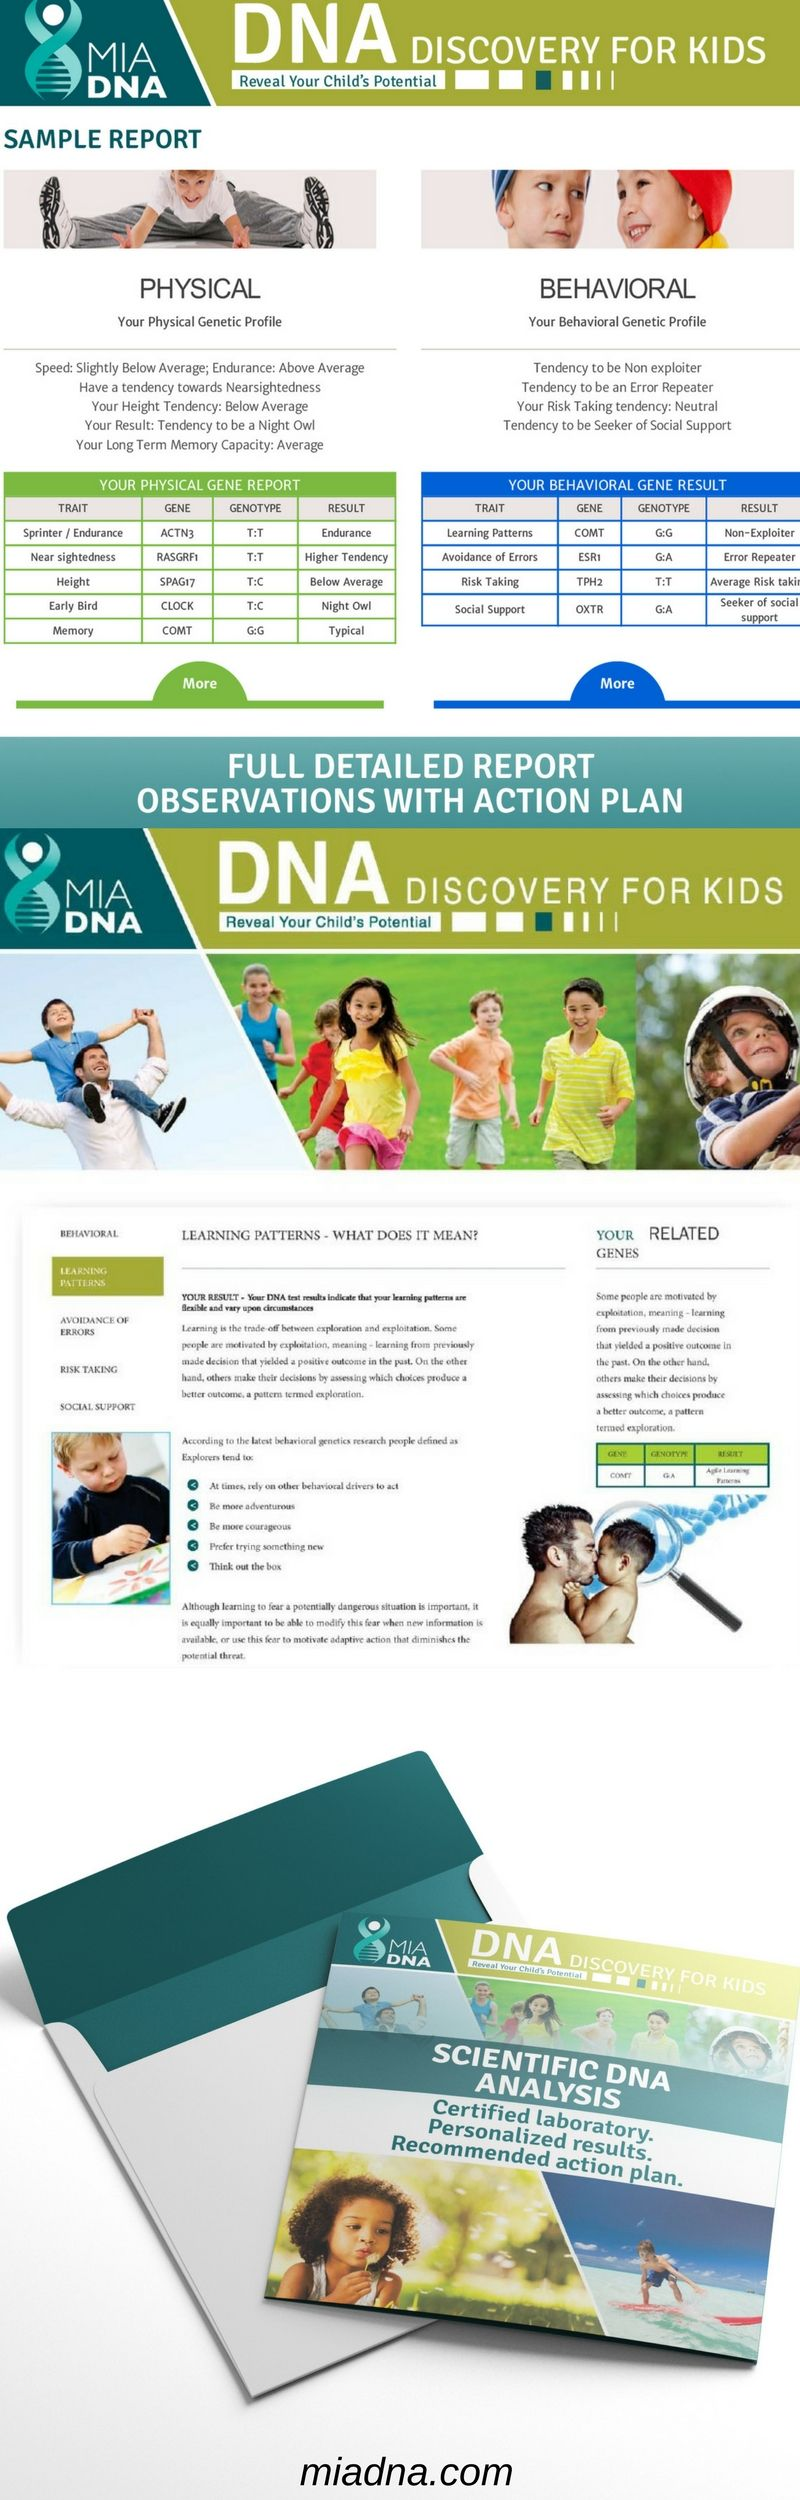 Mia DNA Tests for Fitness, Wellness, Nutrition and Children DNA Discovery. DNA test | DNA testing genealogy | DNA testing | DNA test kit | DNA test humor | Weight Loss DNA Testing | DNA testing | DNA Testing Choice | DNA testing | DNA Tested African Descendants